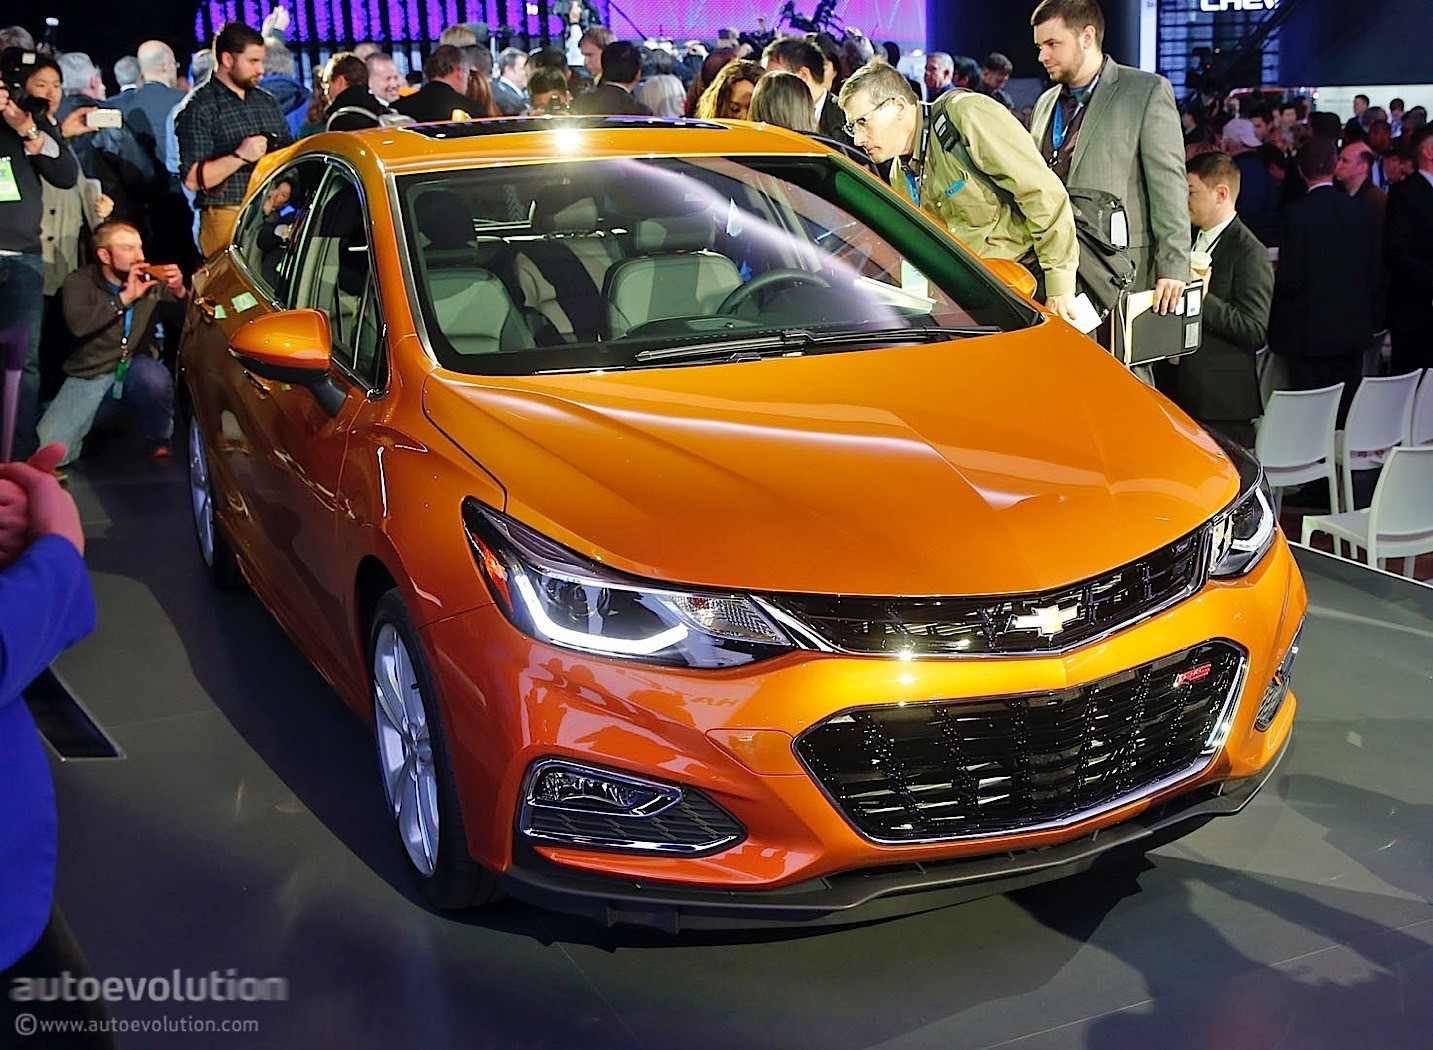 Diesel powered chevrolet cruze fuel economy could be better than 50